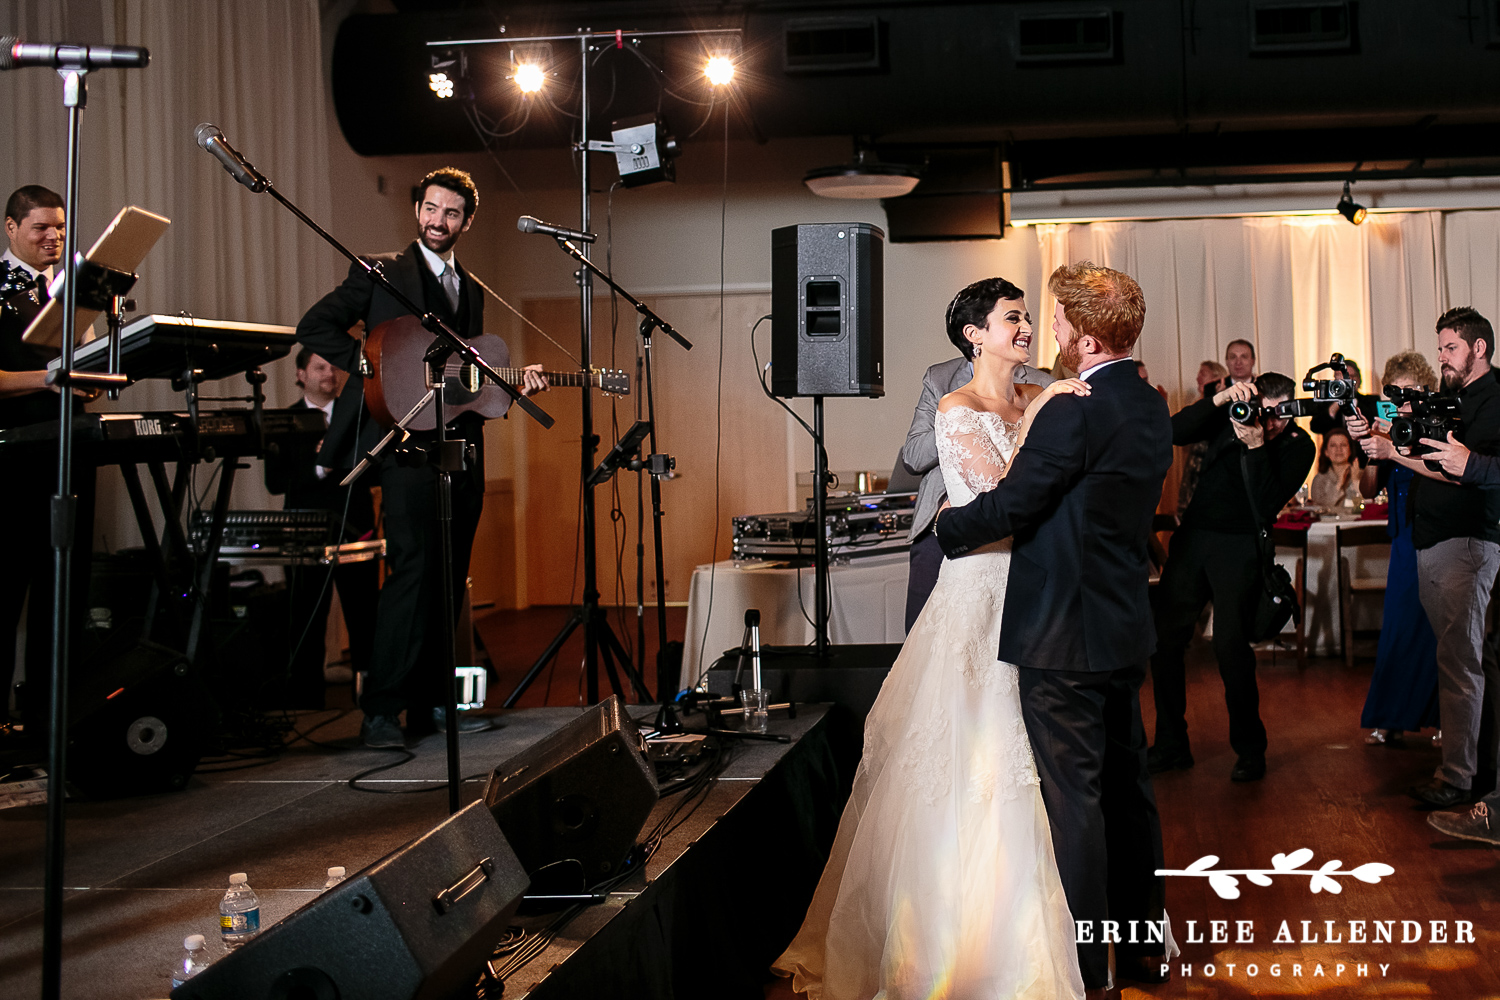 Bride_And_Groom_Embrace